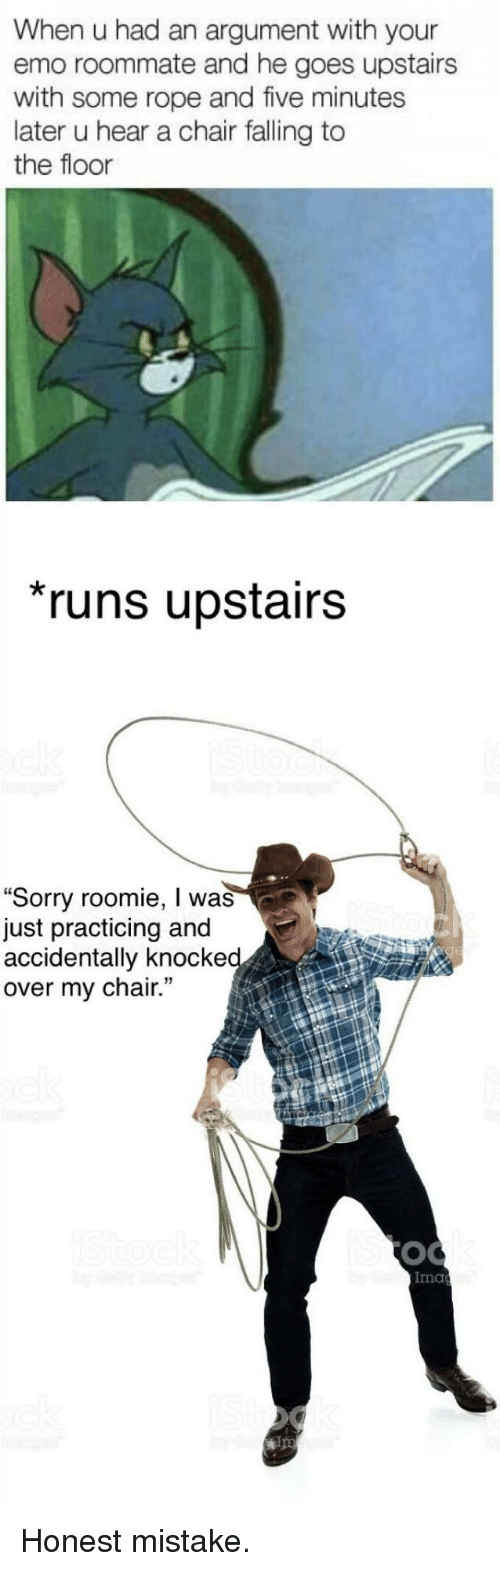 """roomie: When u had an argument with your  emo roommate and he goes upstairs  with some rope and five minutes  later u hear a chair falling to  the floor  runs upstairs  """"Sorry roomie, I was  just practicing and  accidentally knocke  over my chair.  Ima  ips <p>Honest mistake.</p>"""